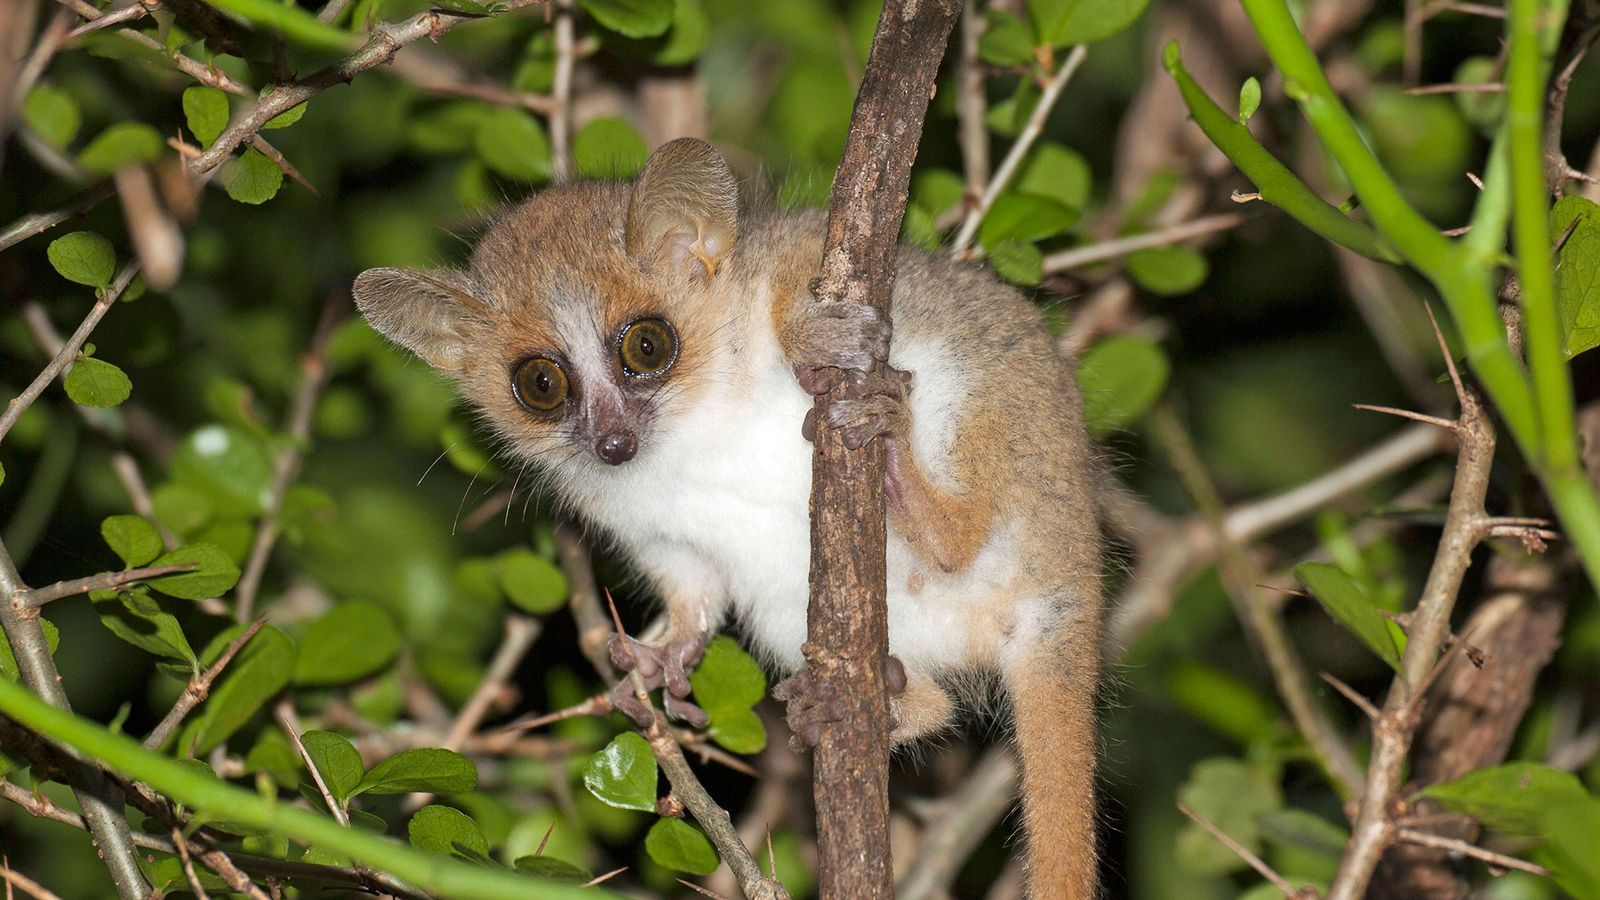 A reddish grey mouse lemur poses in a tree in Madagascar's Berenty Reserve.